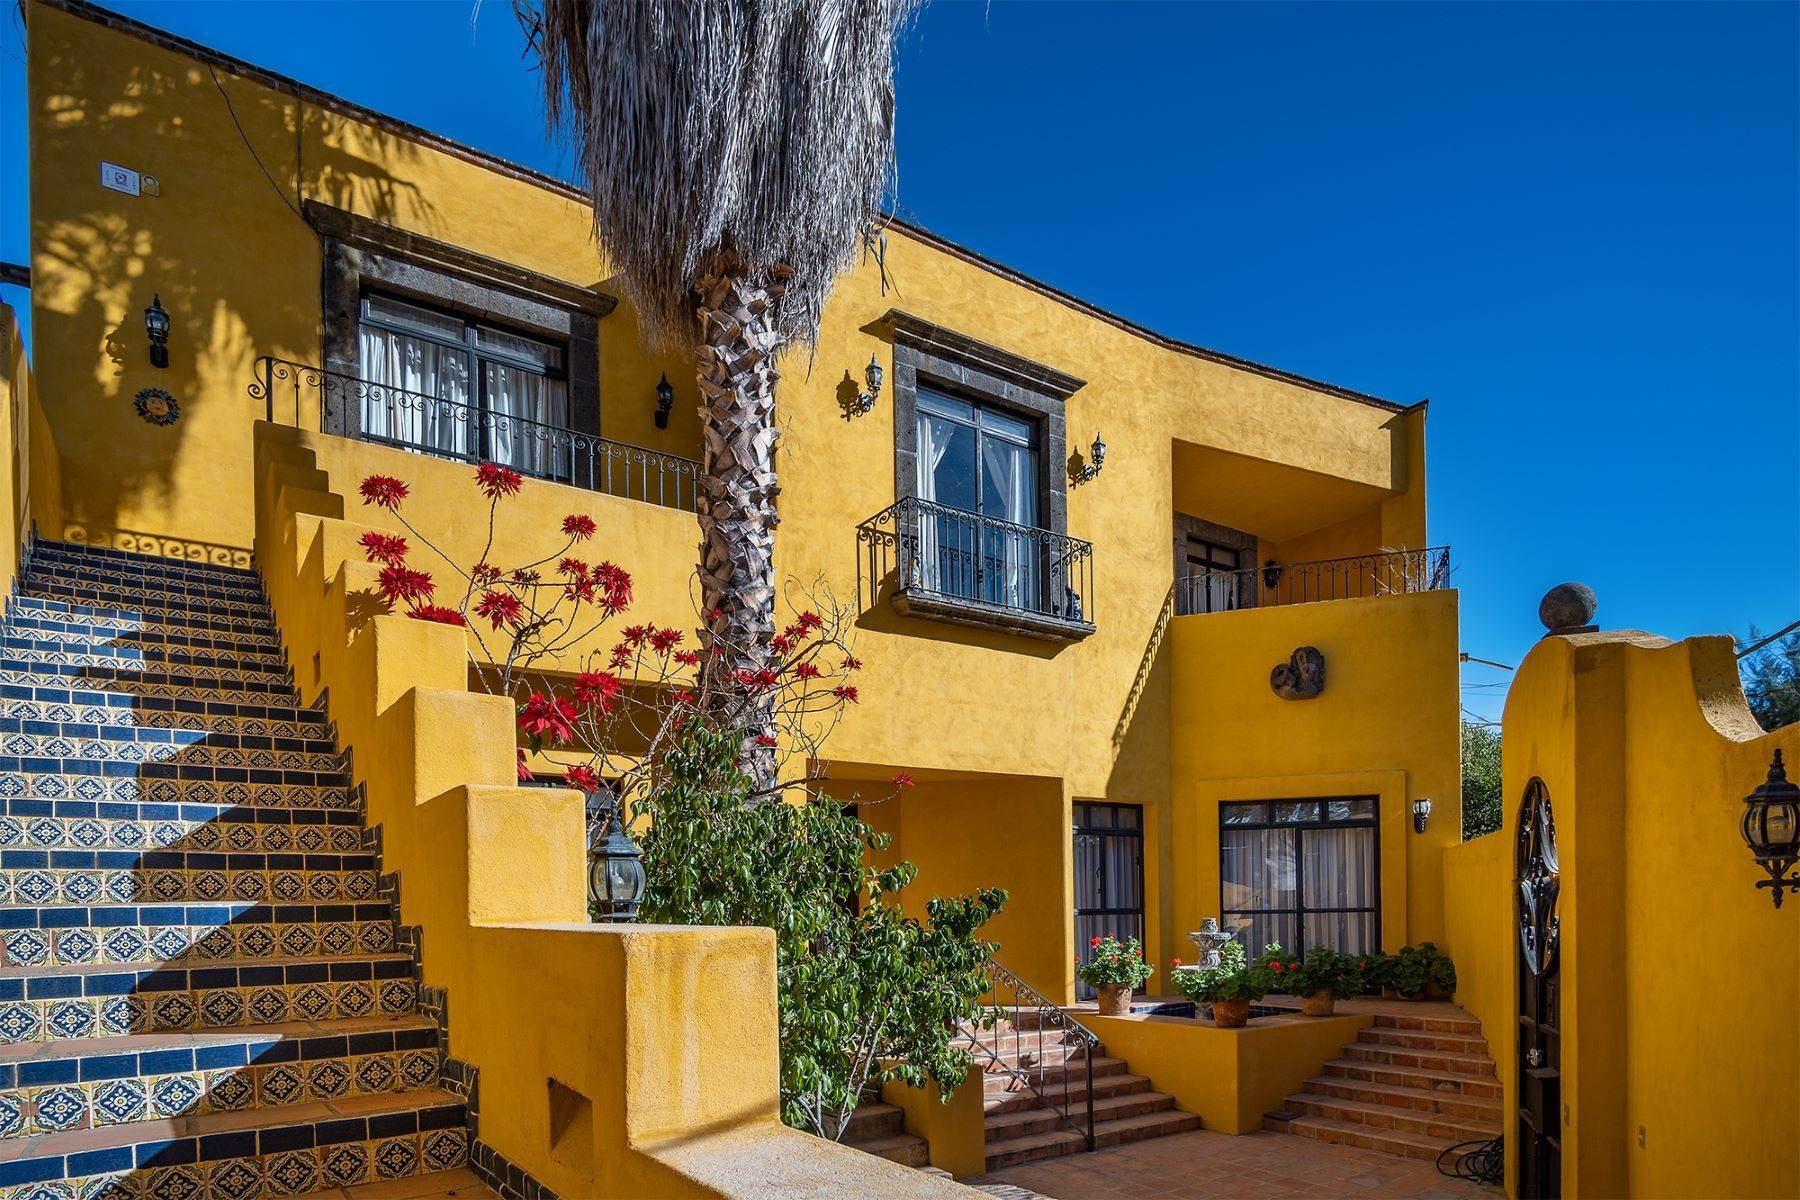 Single Family Homes for Sale at Pila Seca 2B, Centro Histórico San Miguel De Allende, Guanajuato 37700 Mexico